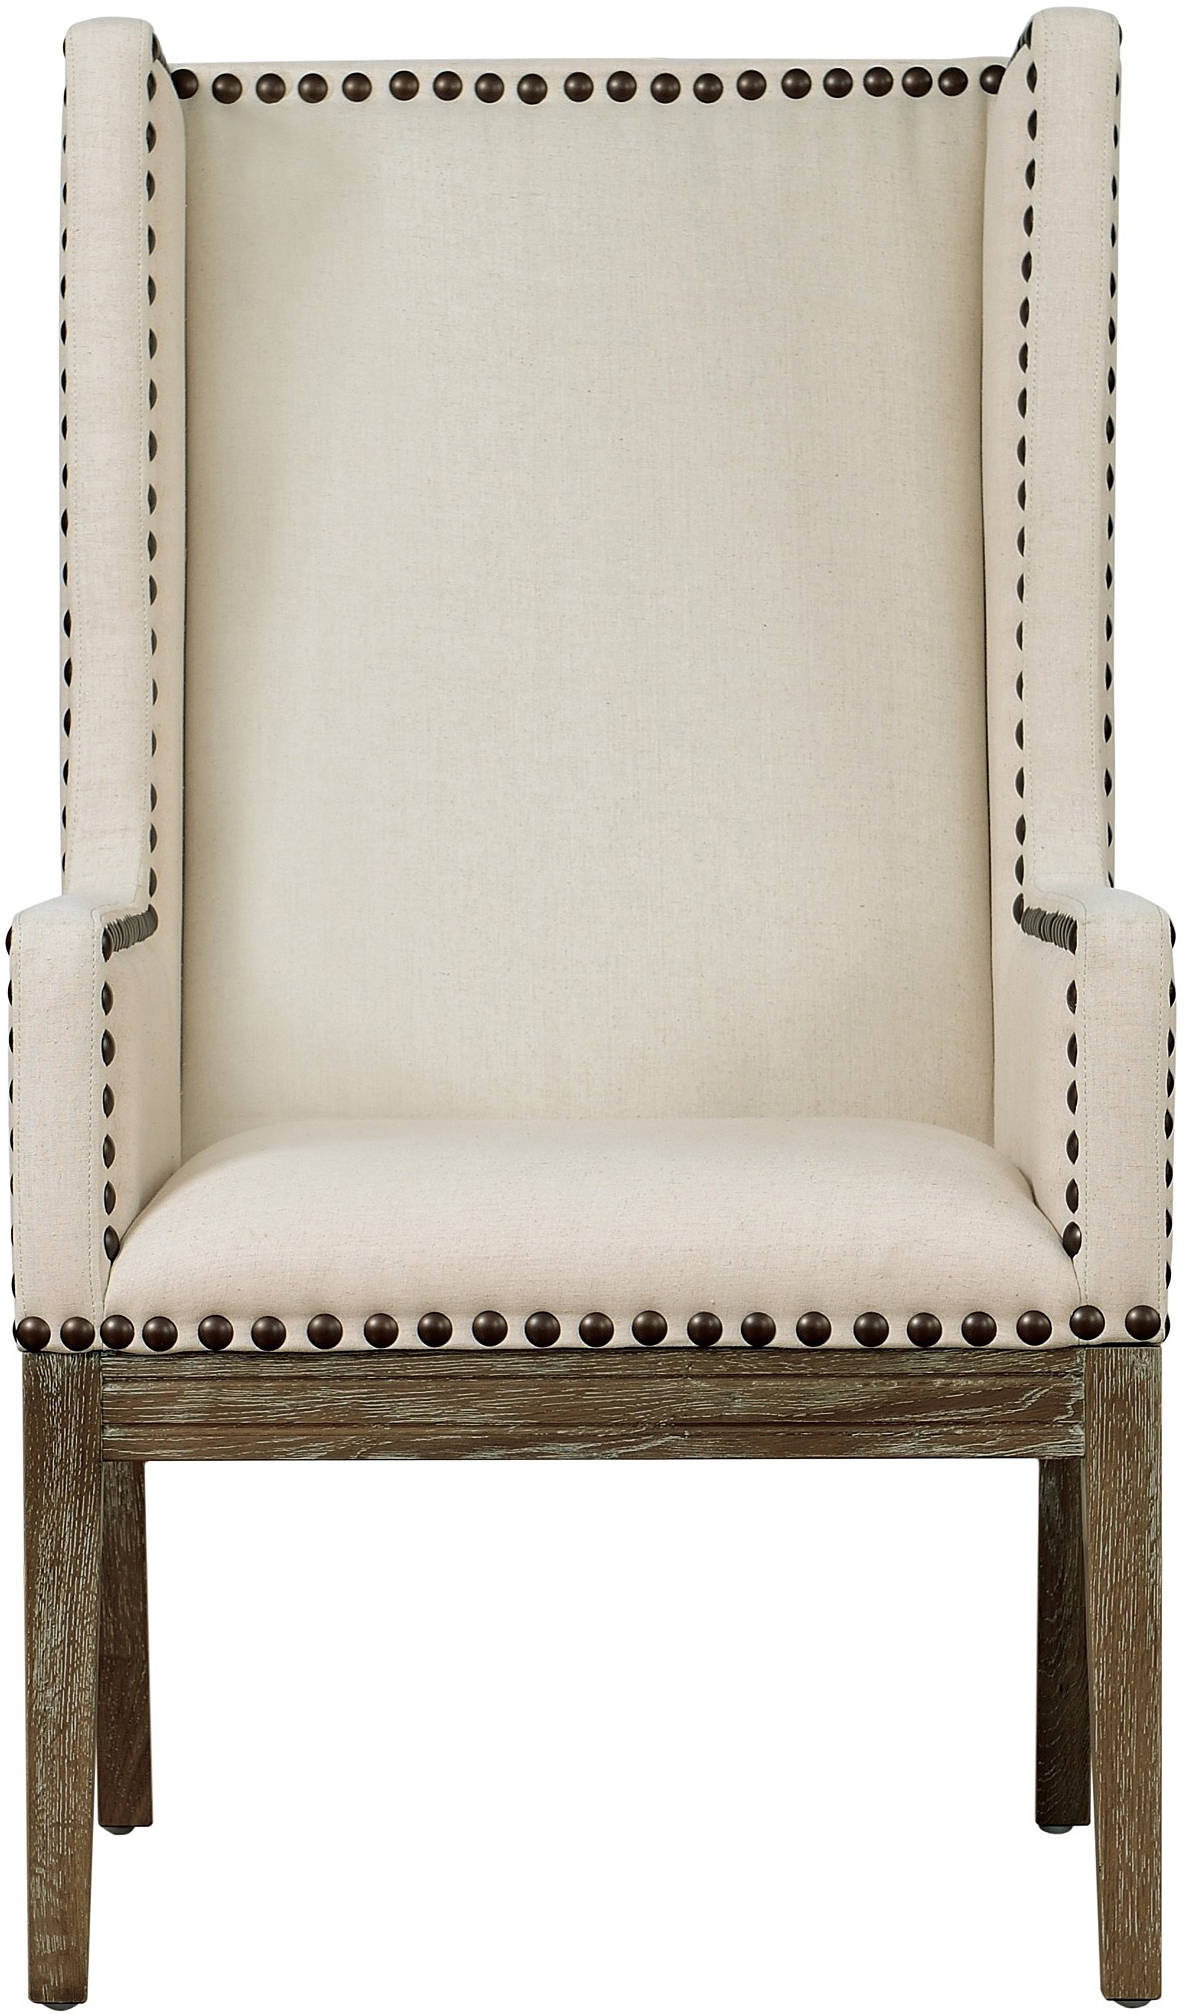 the velvet orianna arm chair in beige